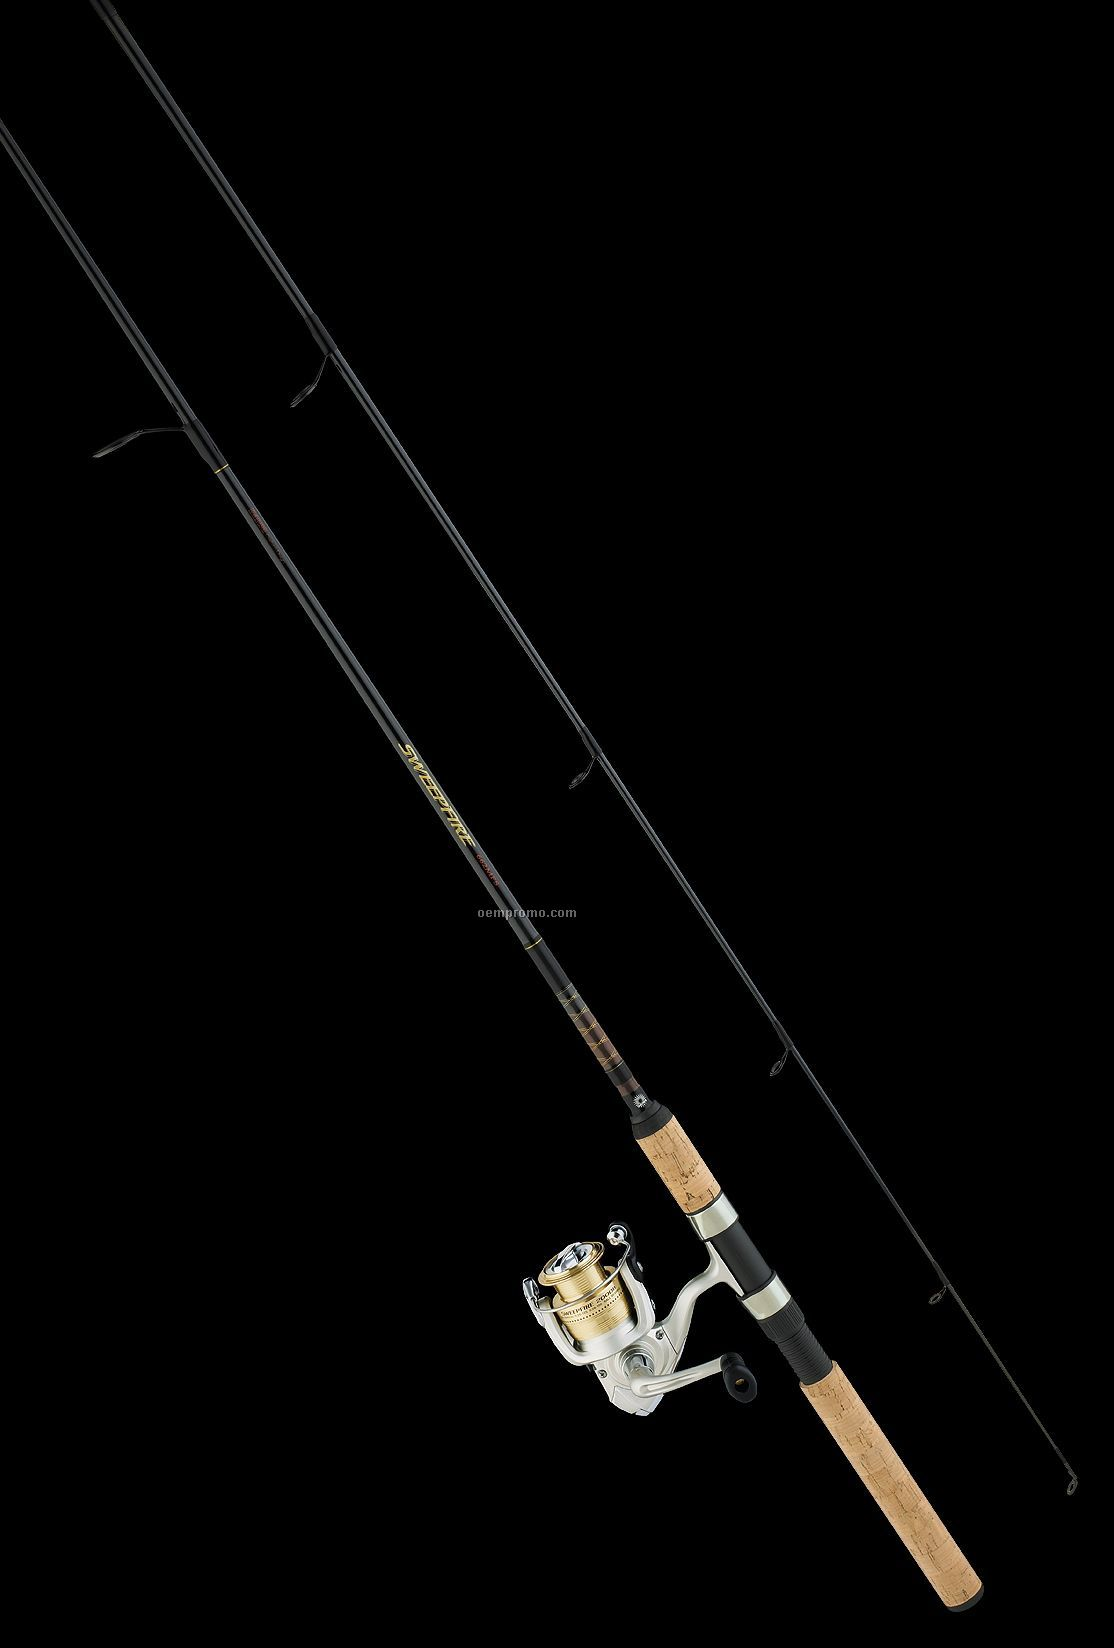 Daiwa Sweepfire Spinning Combo Rod/Reel